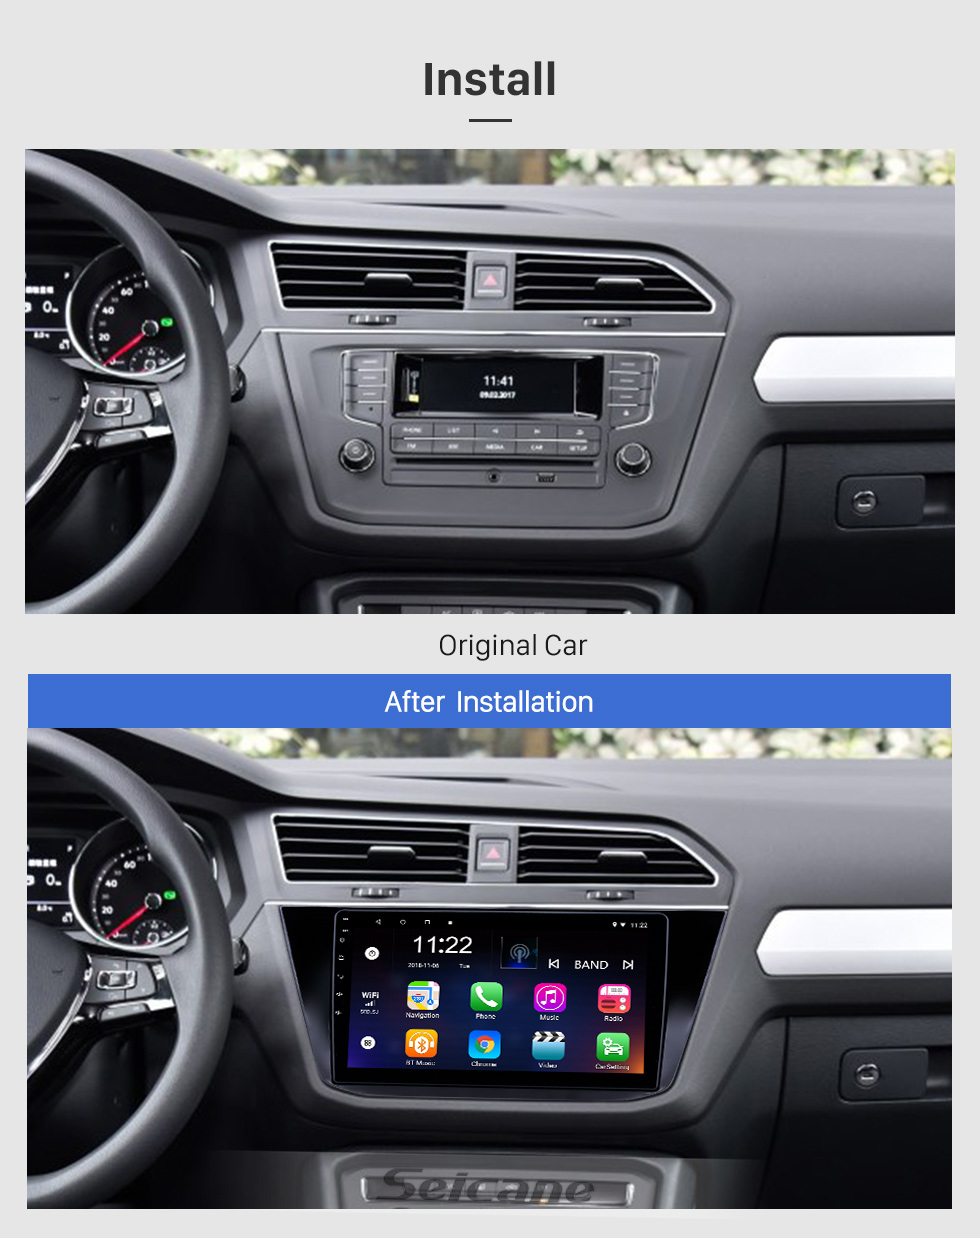 Seicane 10.1 inch Android 8.1 GPS Navigation Radio for 2016-2018 VW Volkswagen Tiguan with HD Touchscreen Bluetooth USB support Carplay TPMS